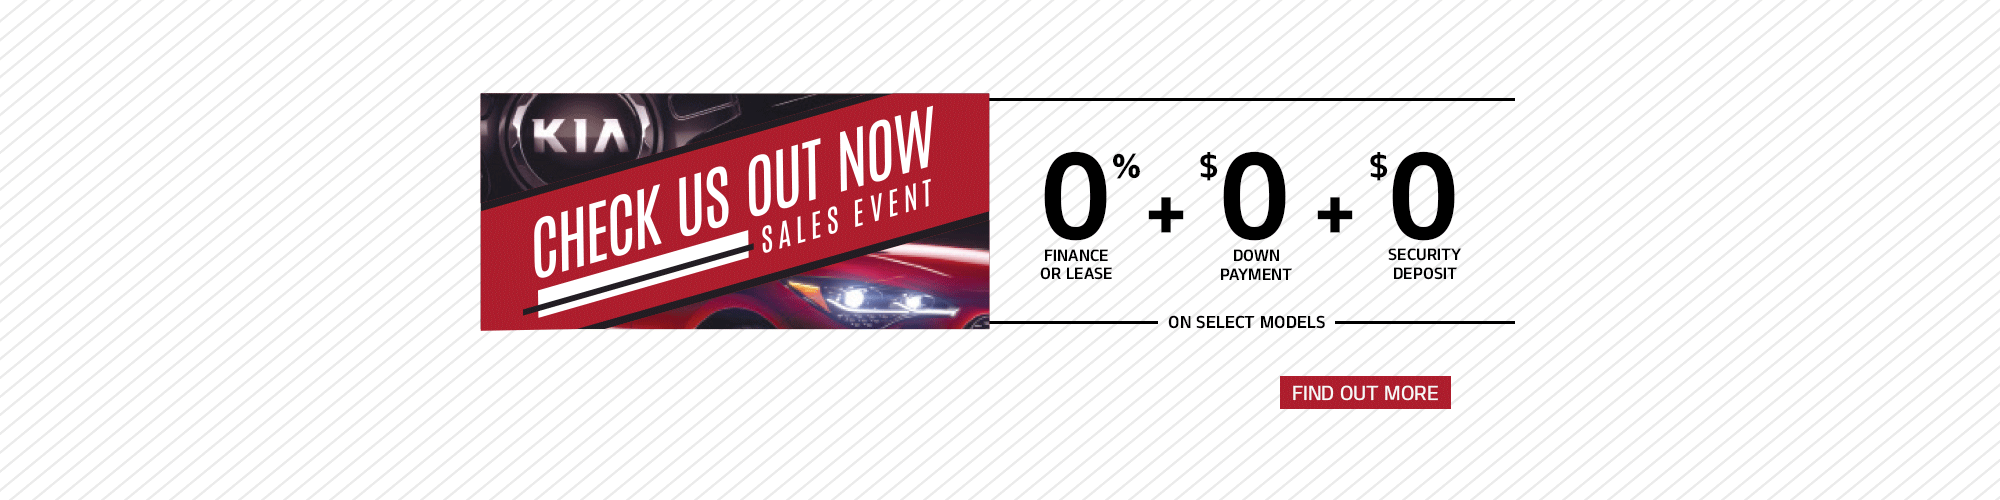 Check us out now Sales Event